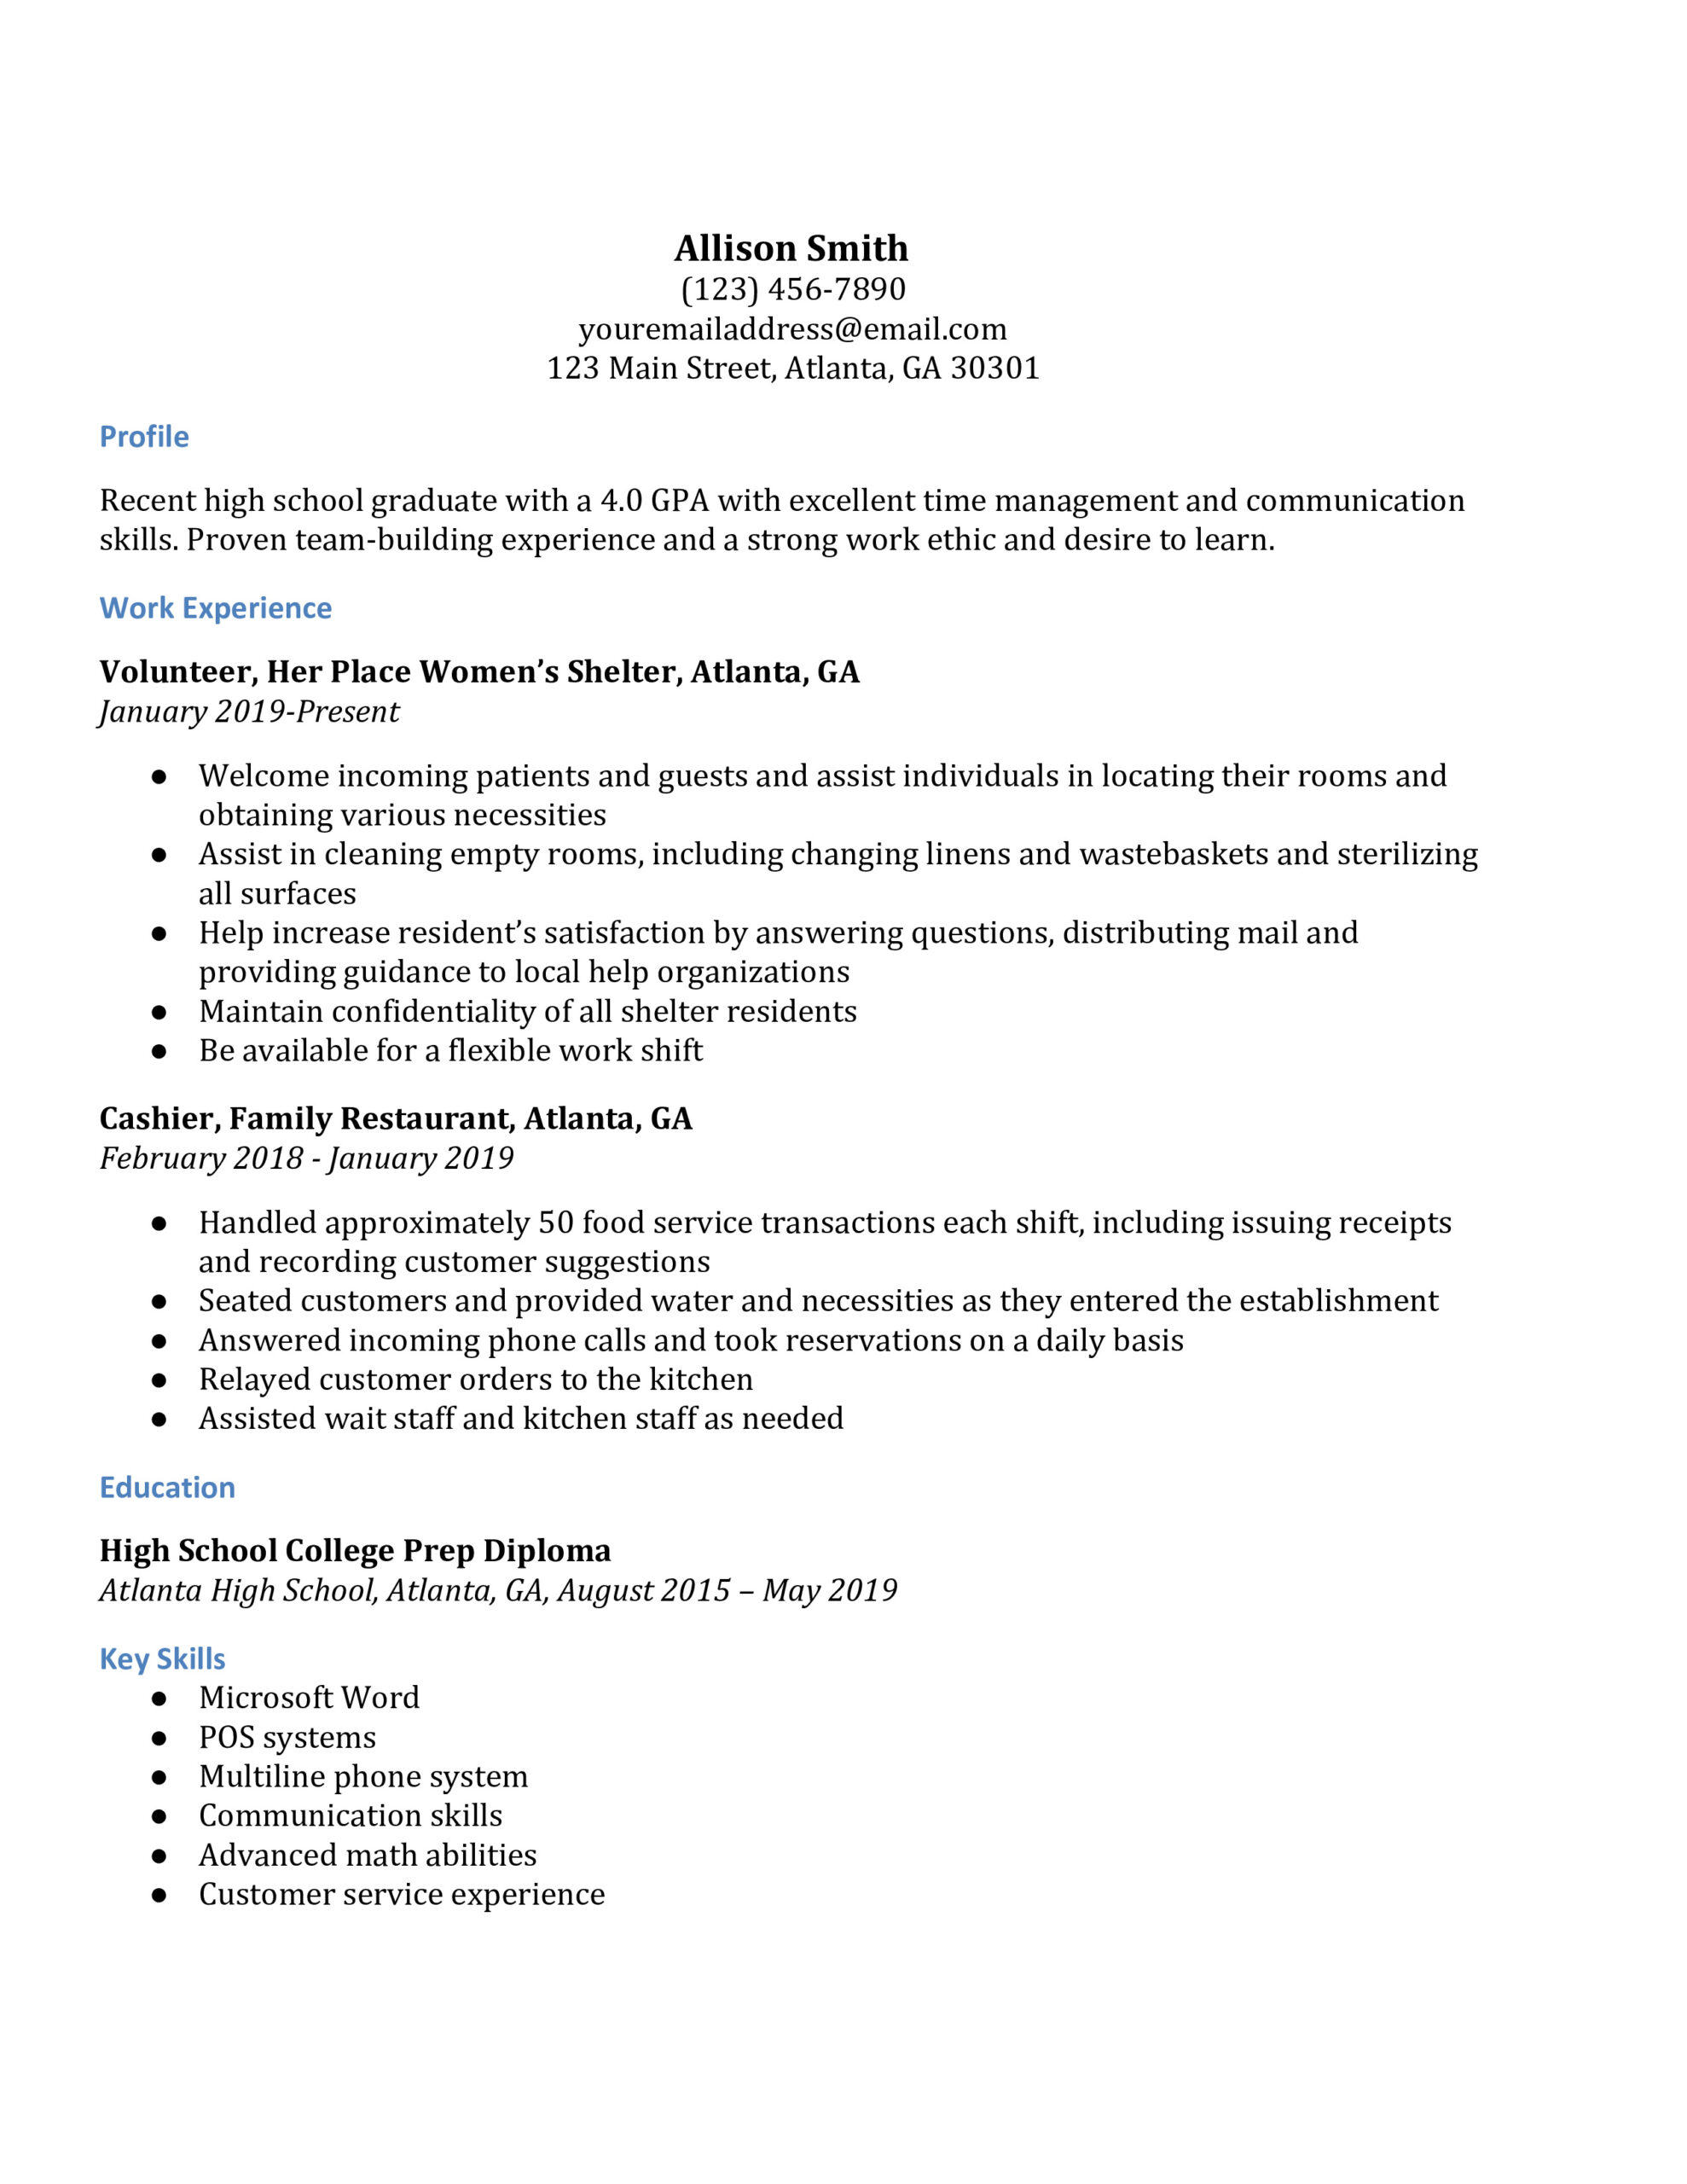 high school resume examples resumebuilder for college general tips professional Resume High School Resume Examples For College